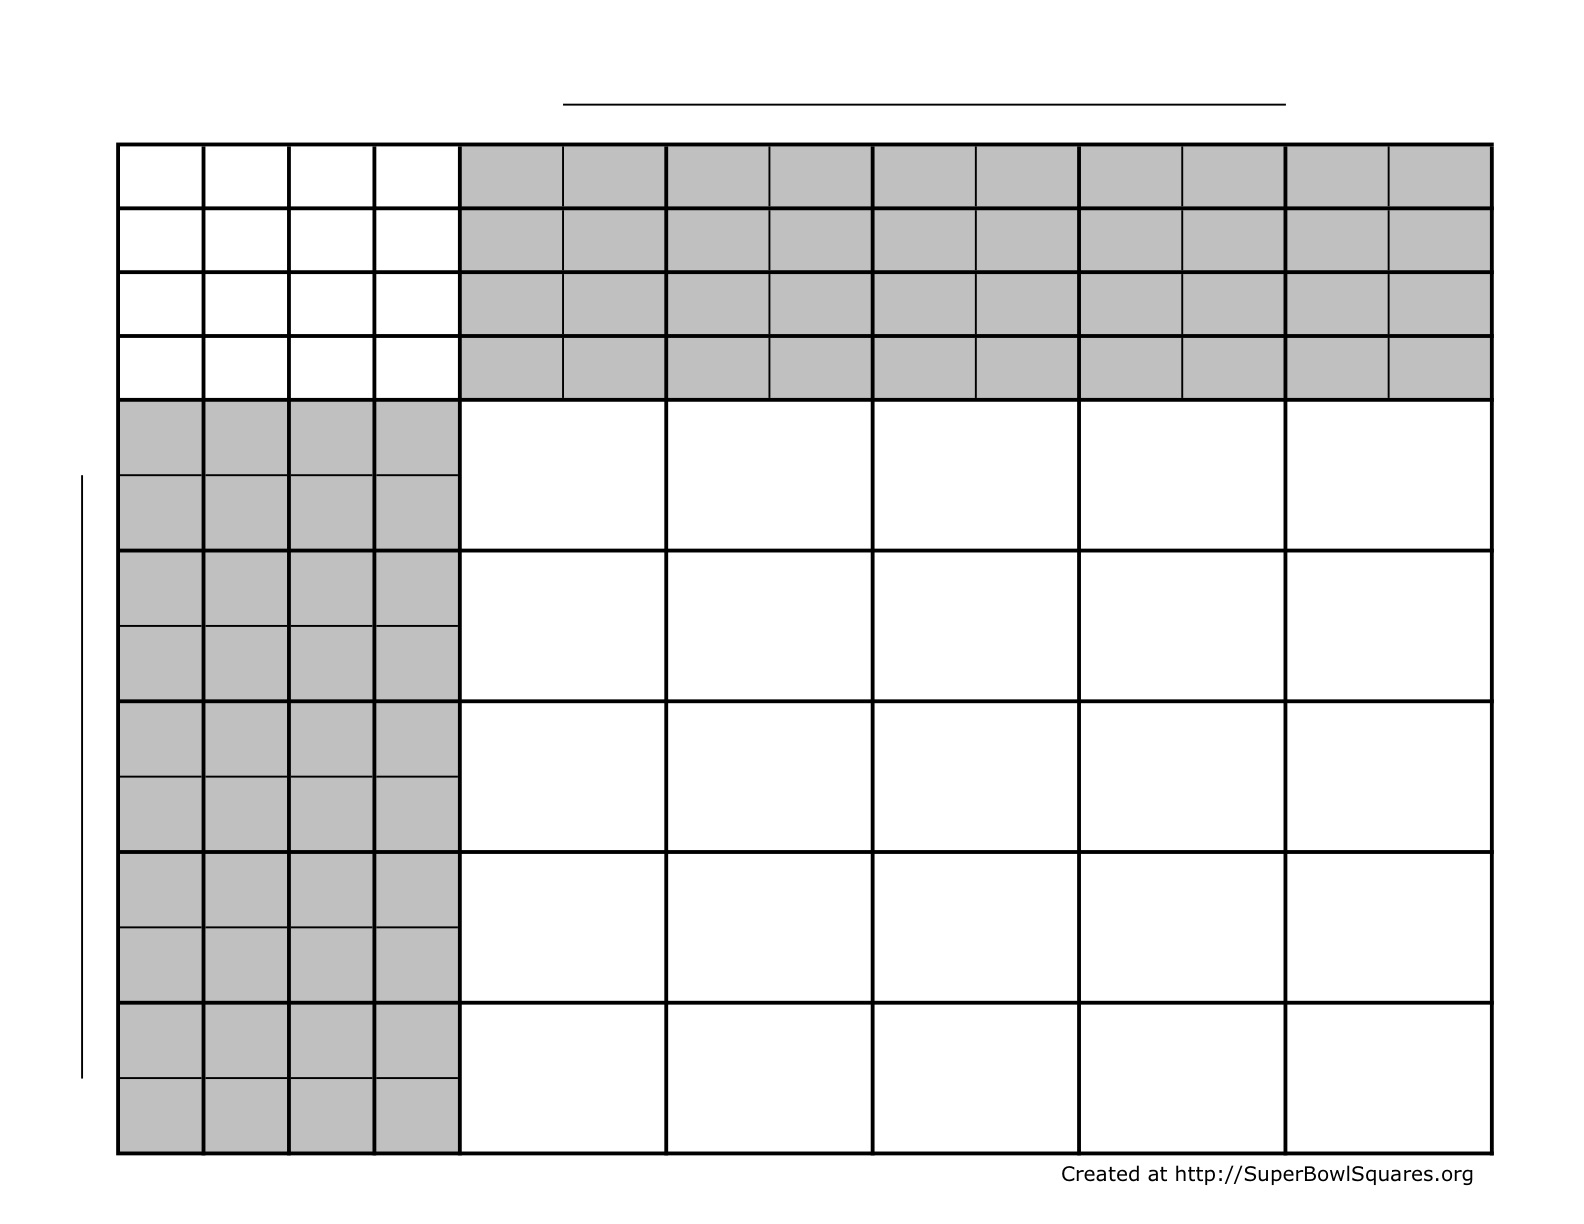 image about Football Squares Printable titled Printable Soccer Squares Sheets